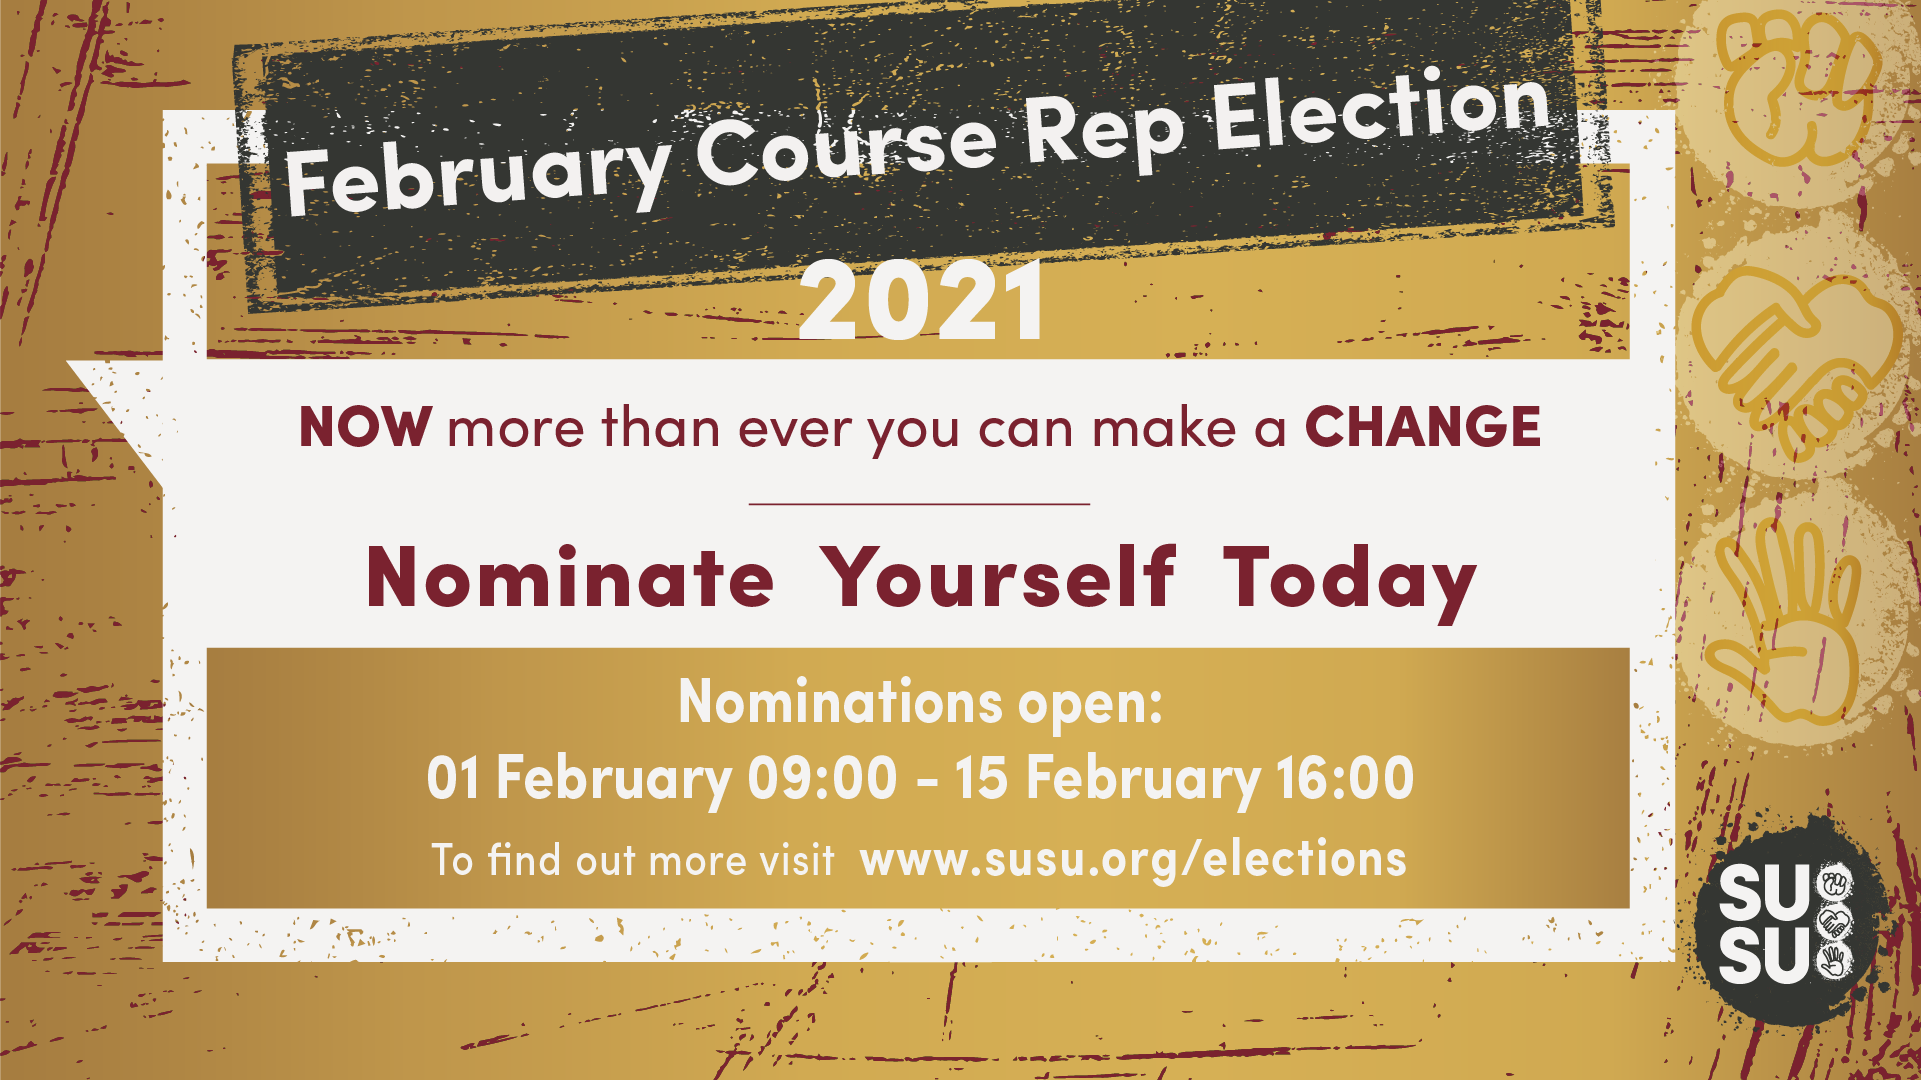 February Course Rep Elections